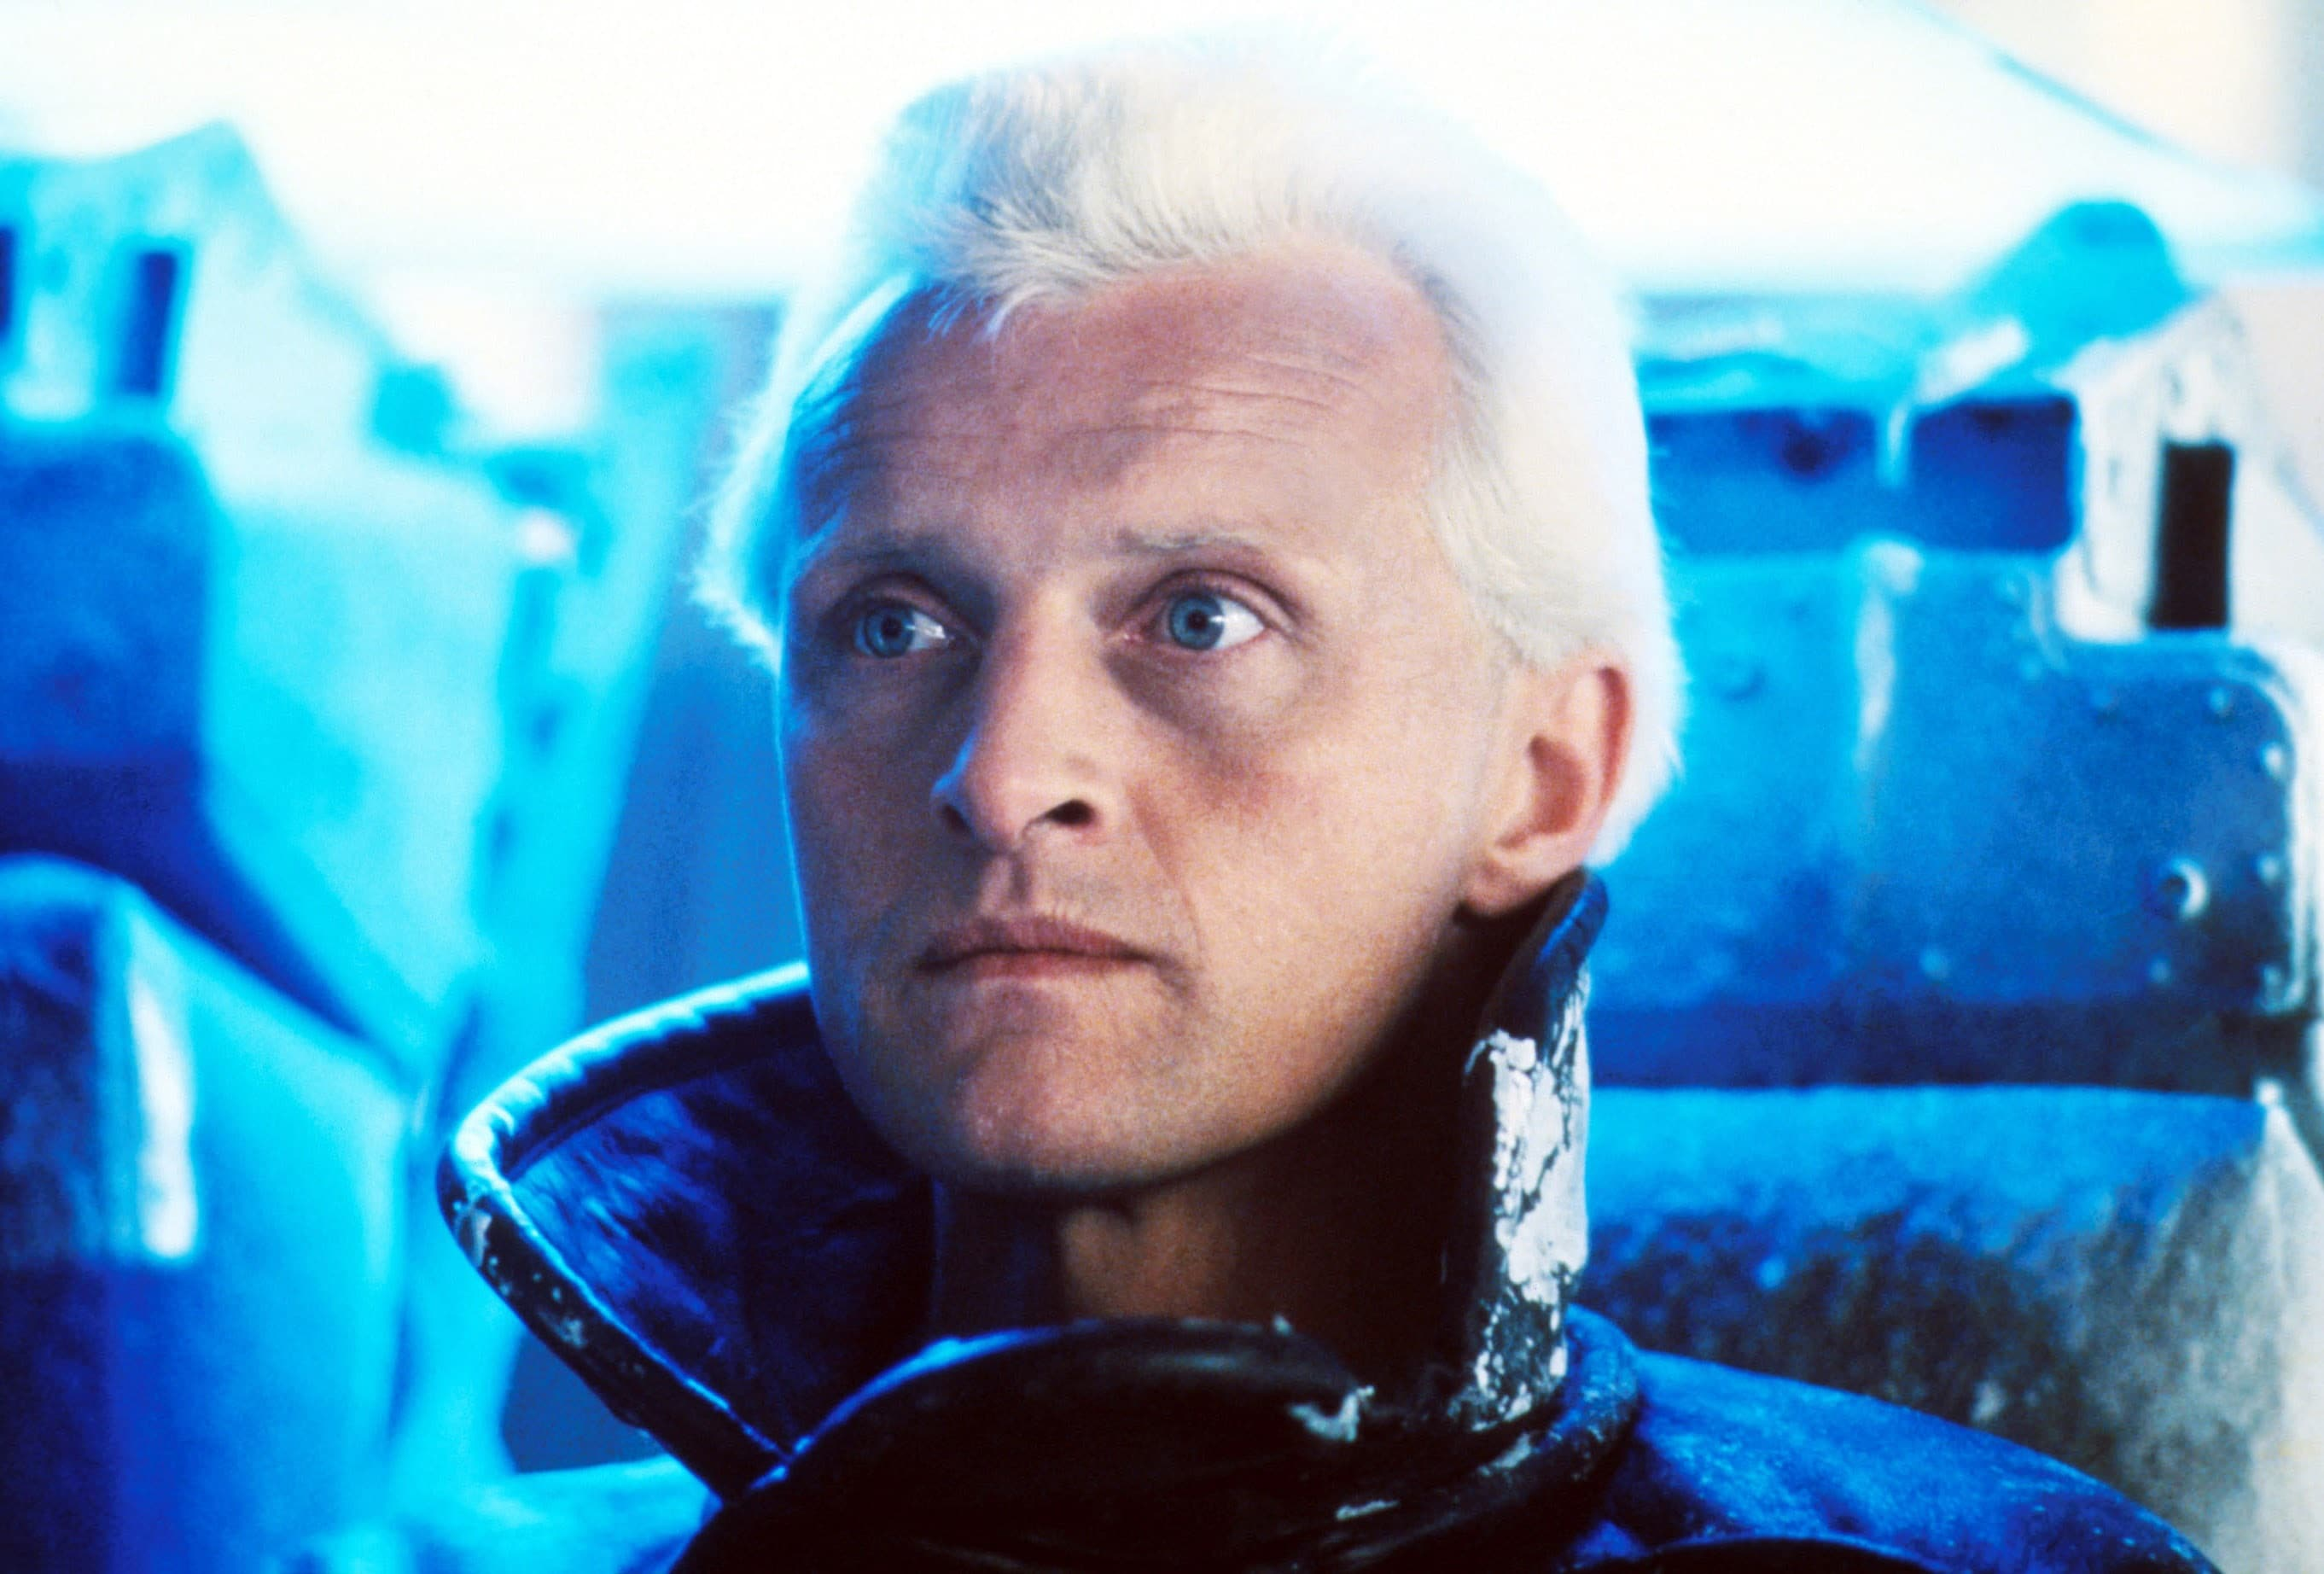 1557484250301_Rutger Hauer Roy.jpg - Roy Batty